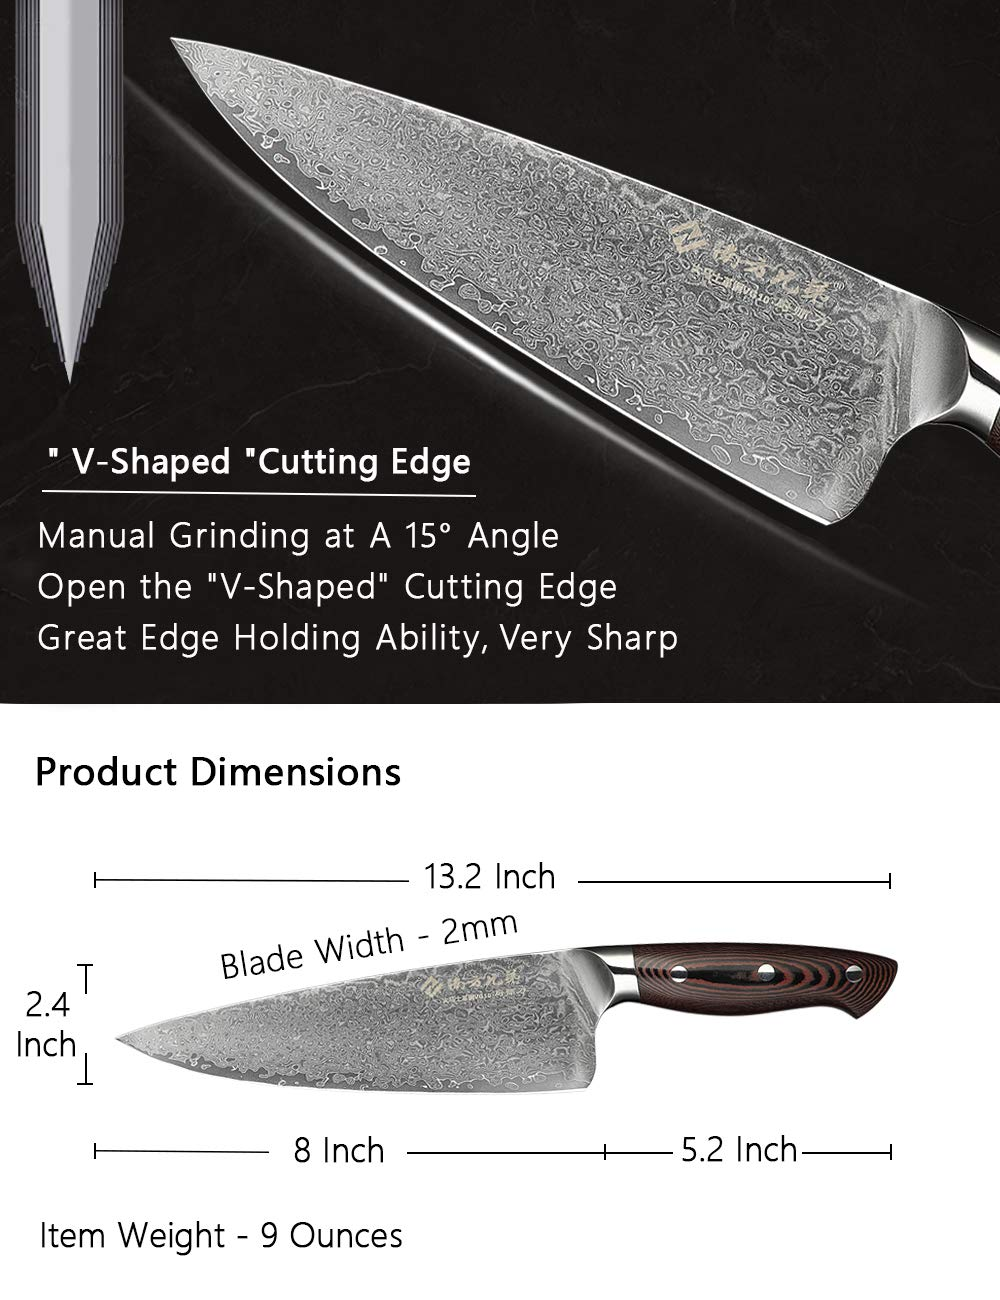 Damascus Chef Knife 8 Inch Professional Super Steel VG10 High Carbon Stainless Steel Damascus Knife Comfortable Ergonomic Wood Grain Handle Very Sharp and Easy to Re-Sharpen High-End Gift Box